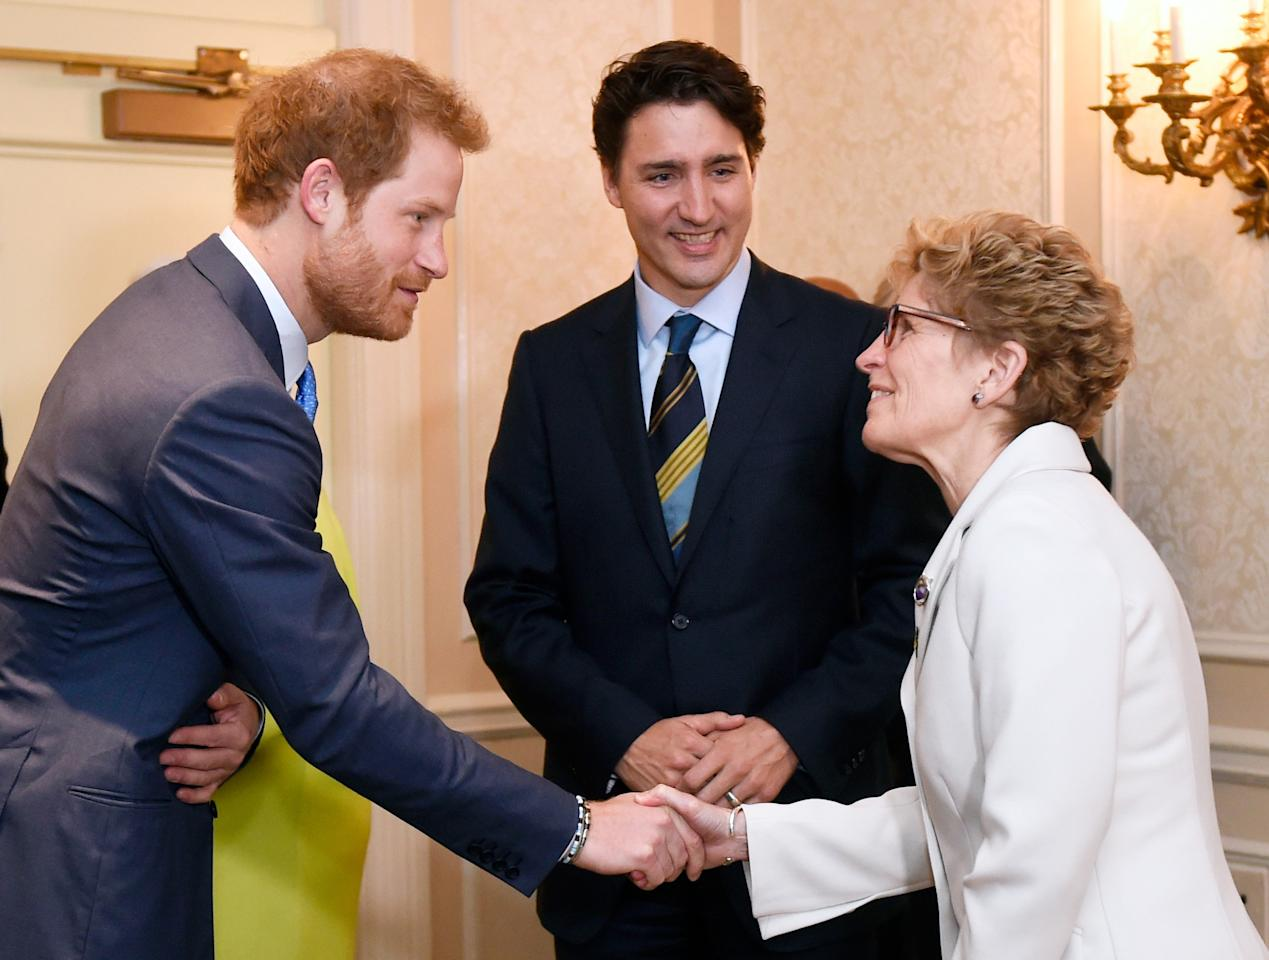 Prince Harry shakes hands with Ontario Premier Kathleen Wynne (R), as Prime Minister Justin Trudeau looks on during the Prince's visit to Toronto to promote the 2017 Invictus Games, which the city will be hosting, on Monday, May 2, 2016. REUTERS/Nathan Denette/Pool